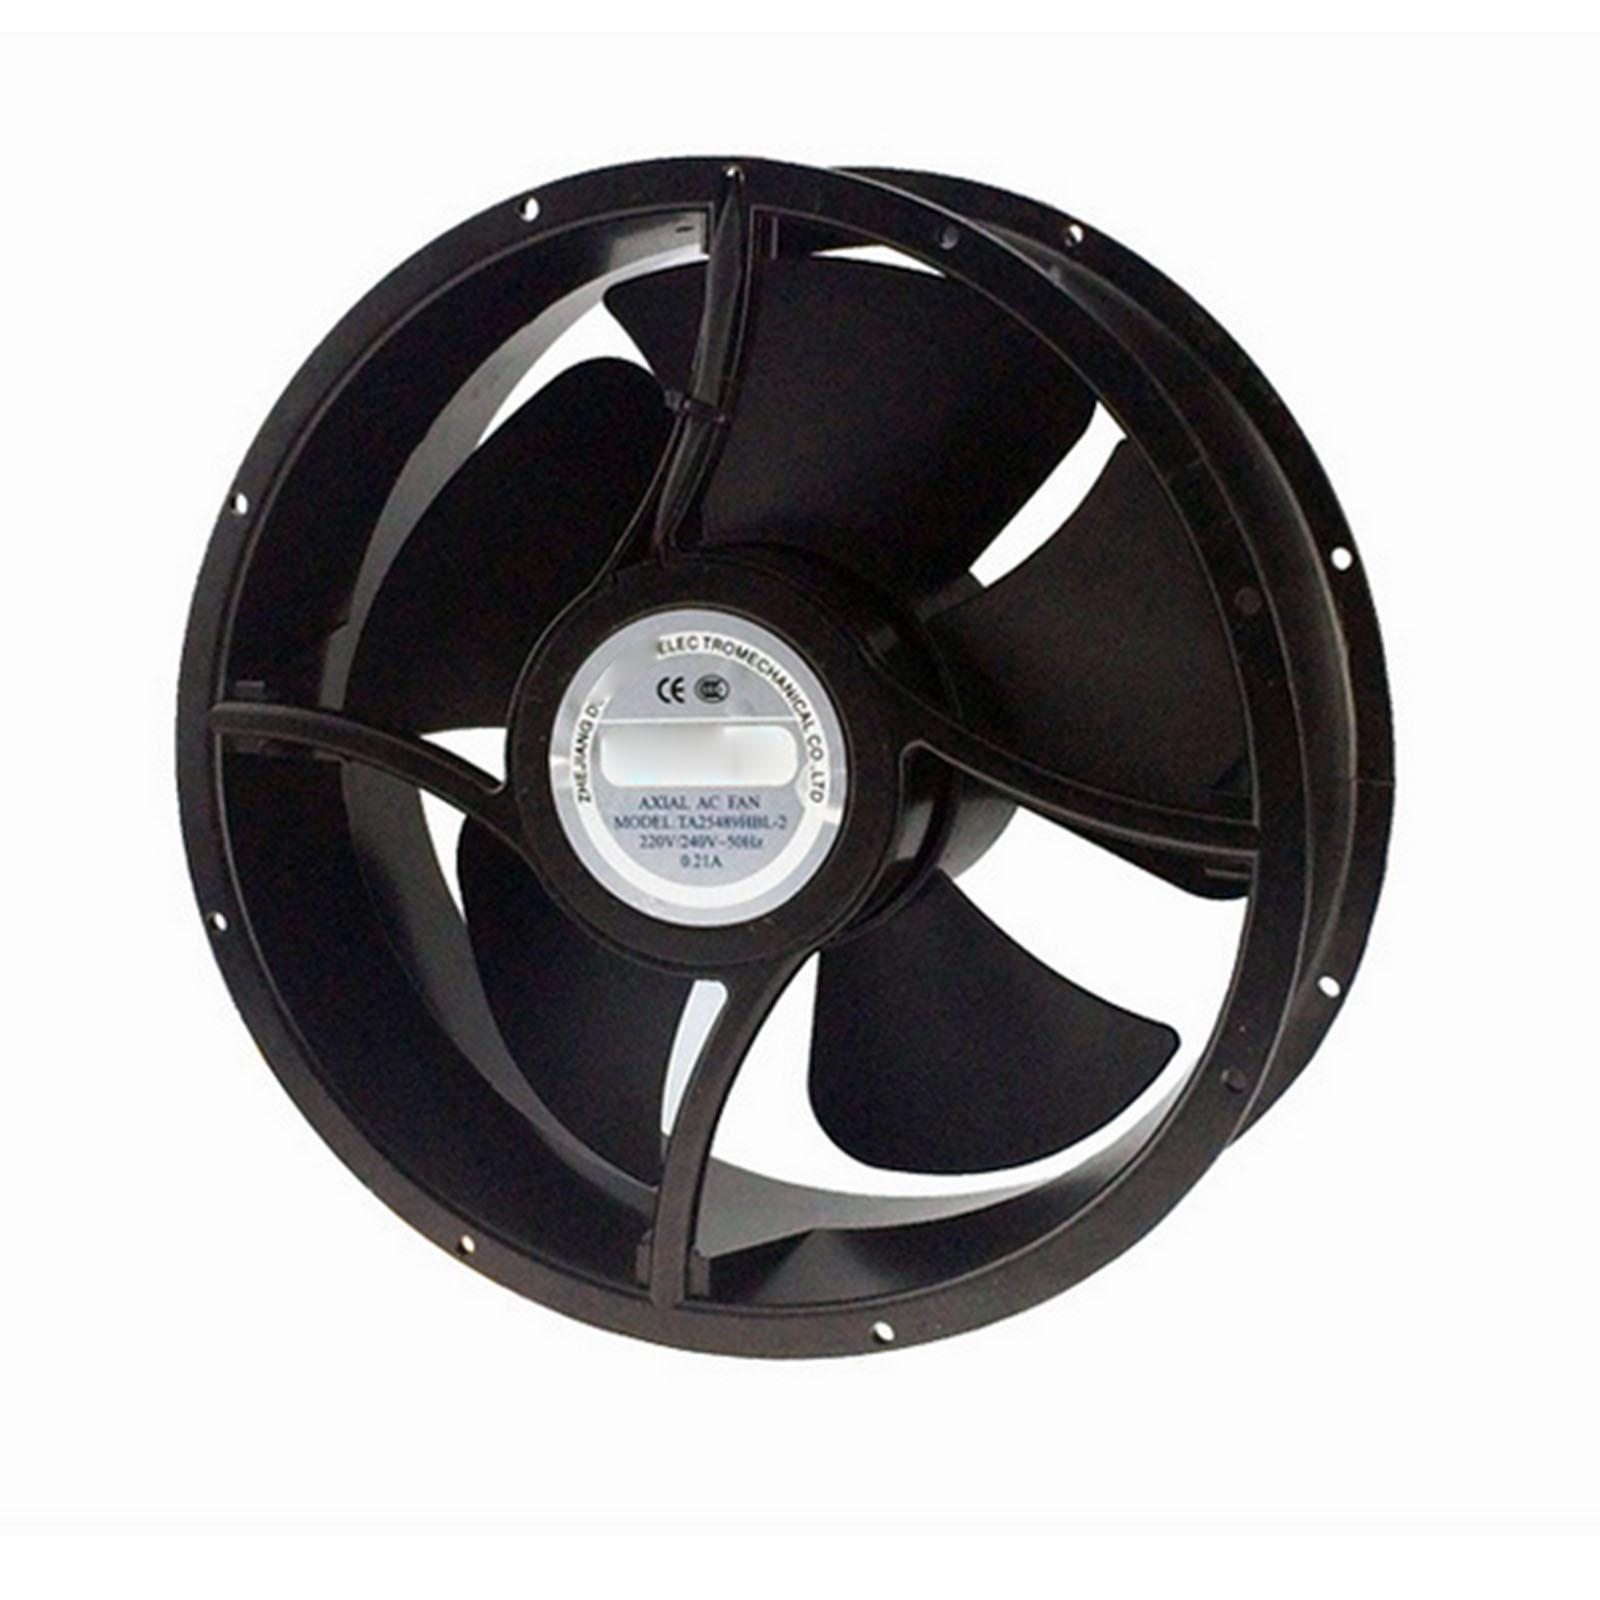 220V AC 254x89mm Round Axial Radiator Fan 860CFM 2600RPM Ball Bearing High Speed